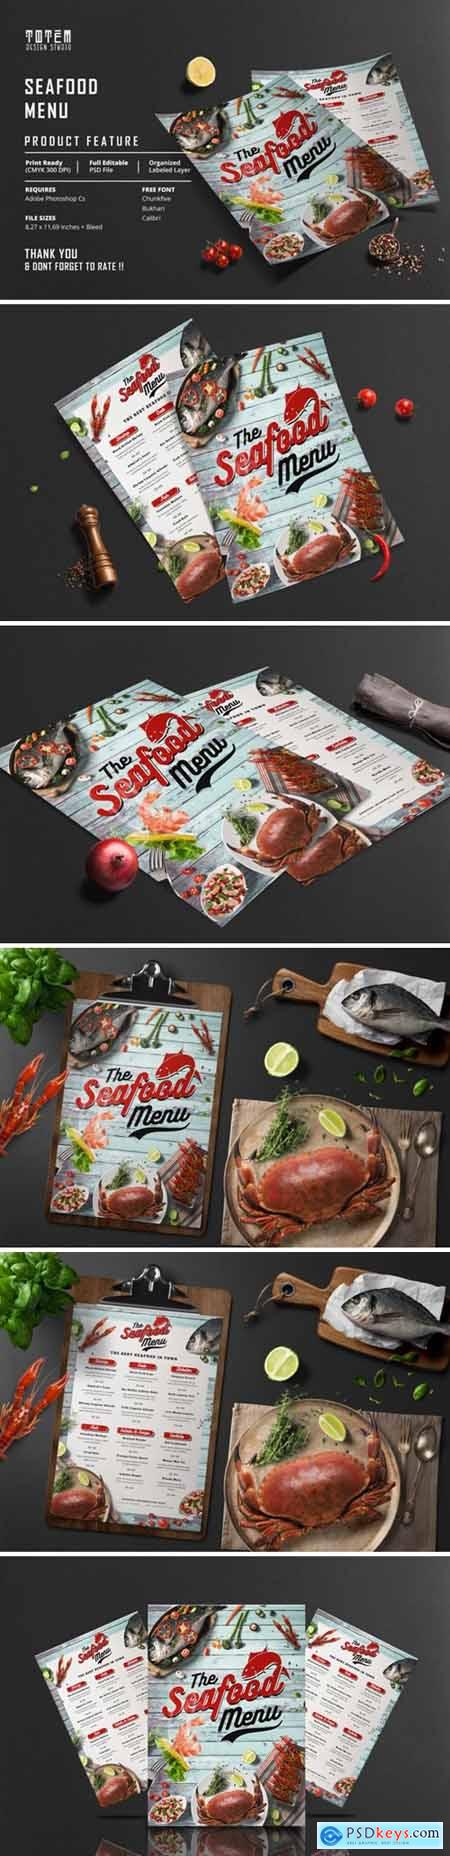 SEAFOOD FOOD MENU 3926289